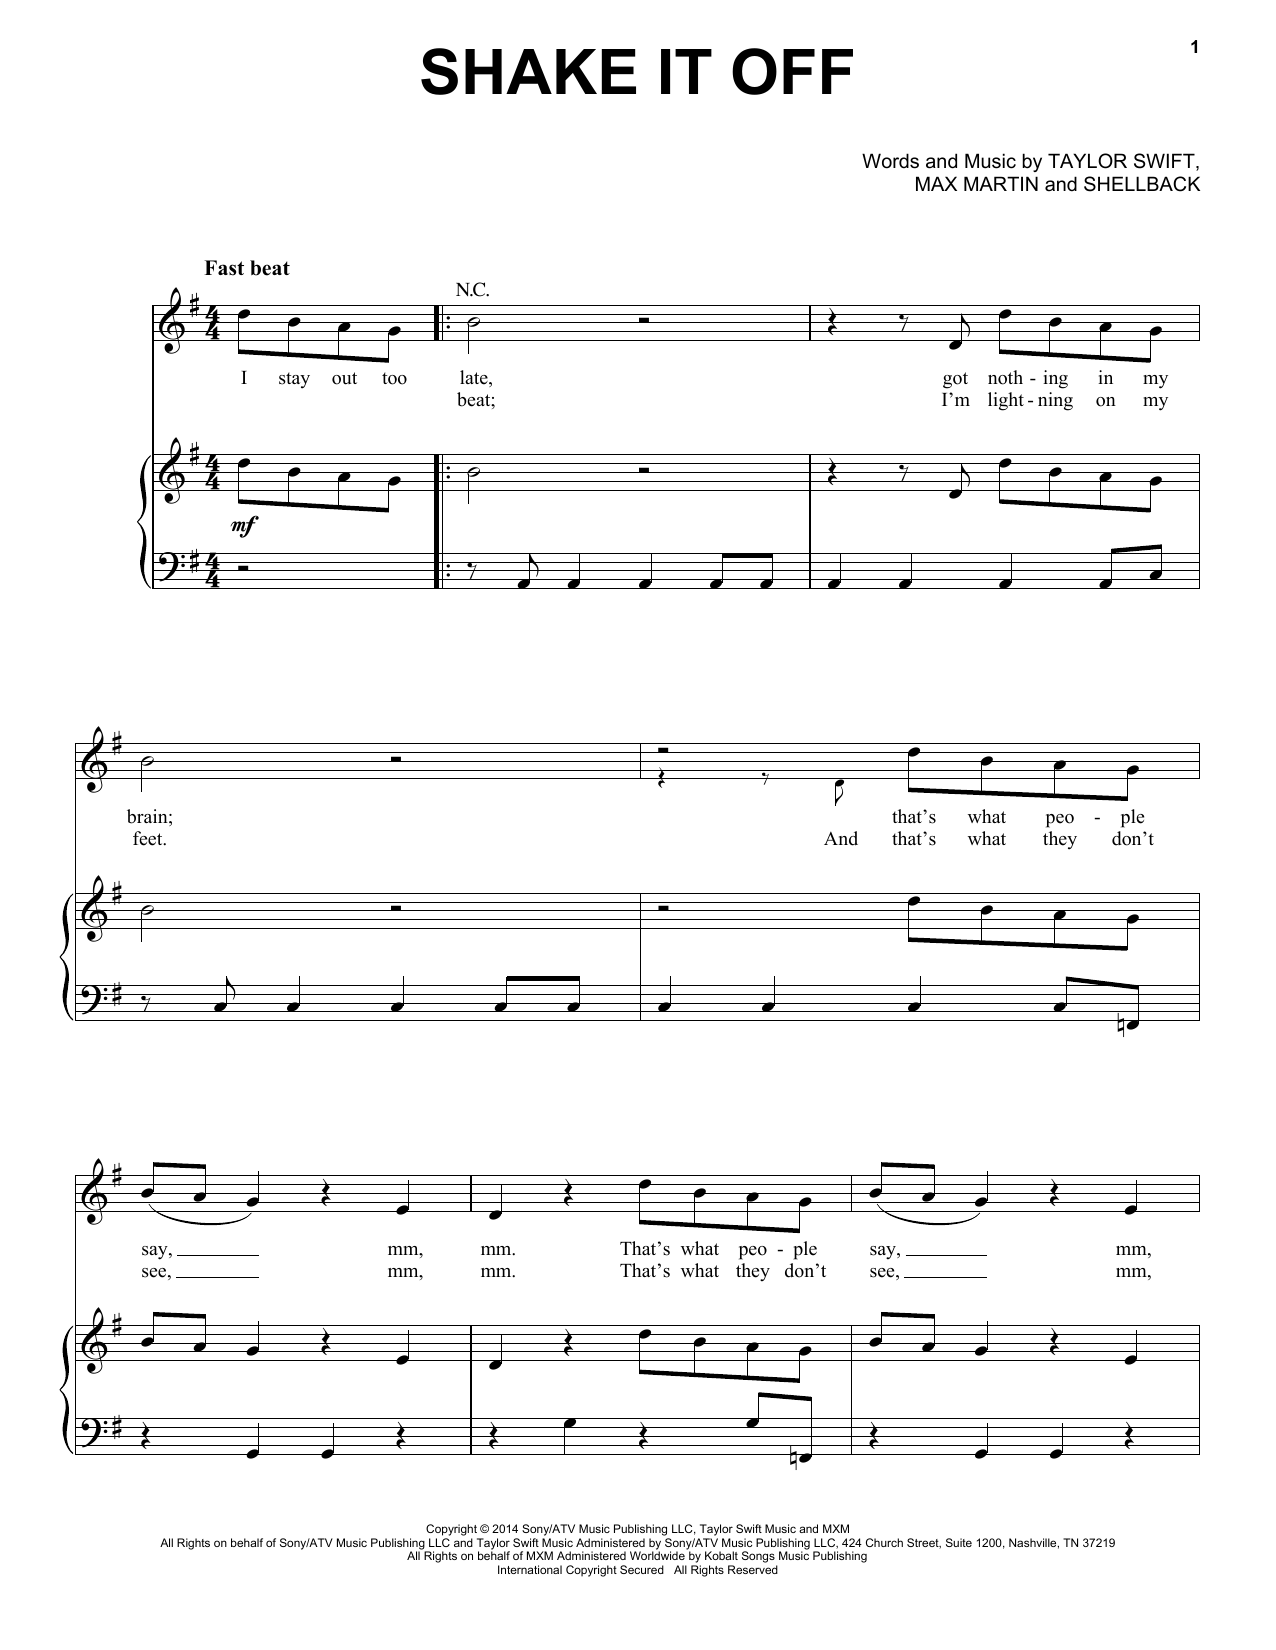 Shake It Off sheet music by Taylor Swift (Piano, Vocal ... Mariah Carey Chords